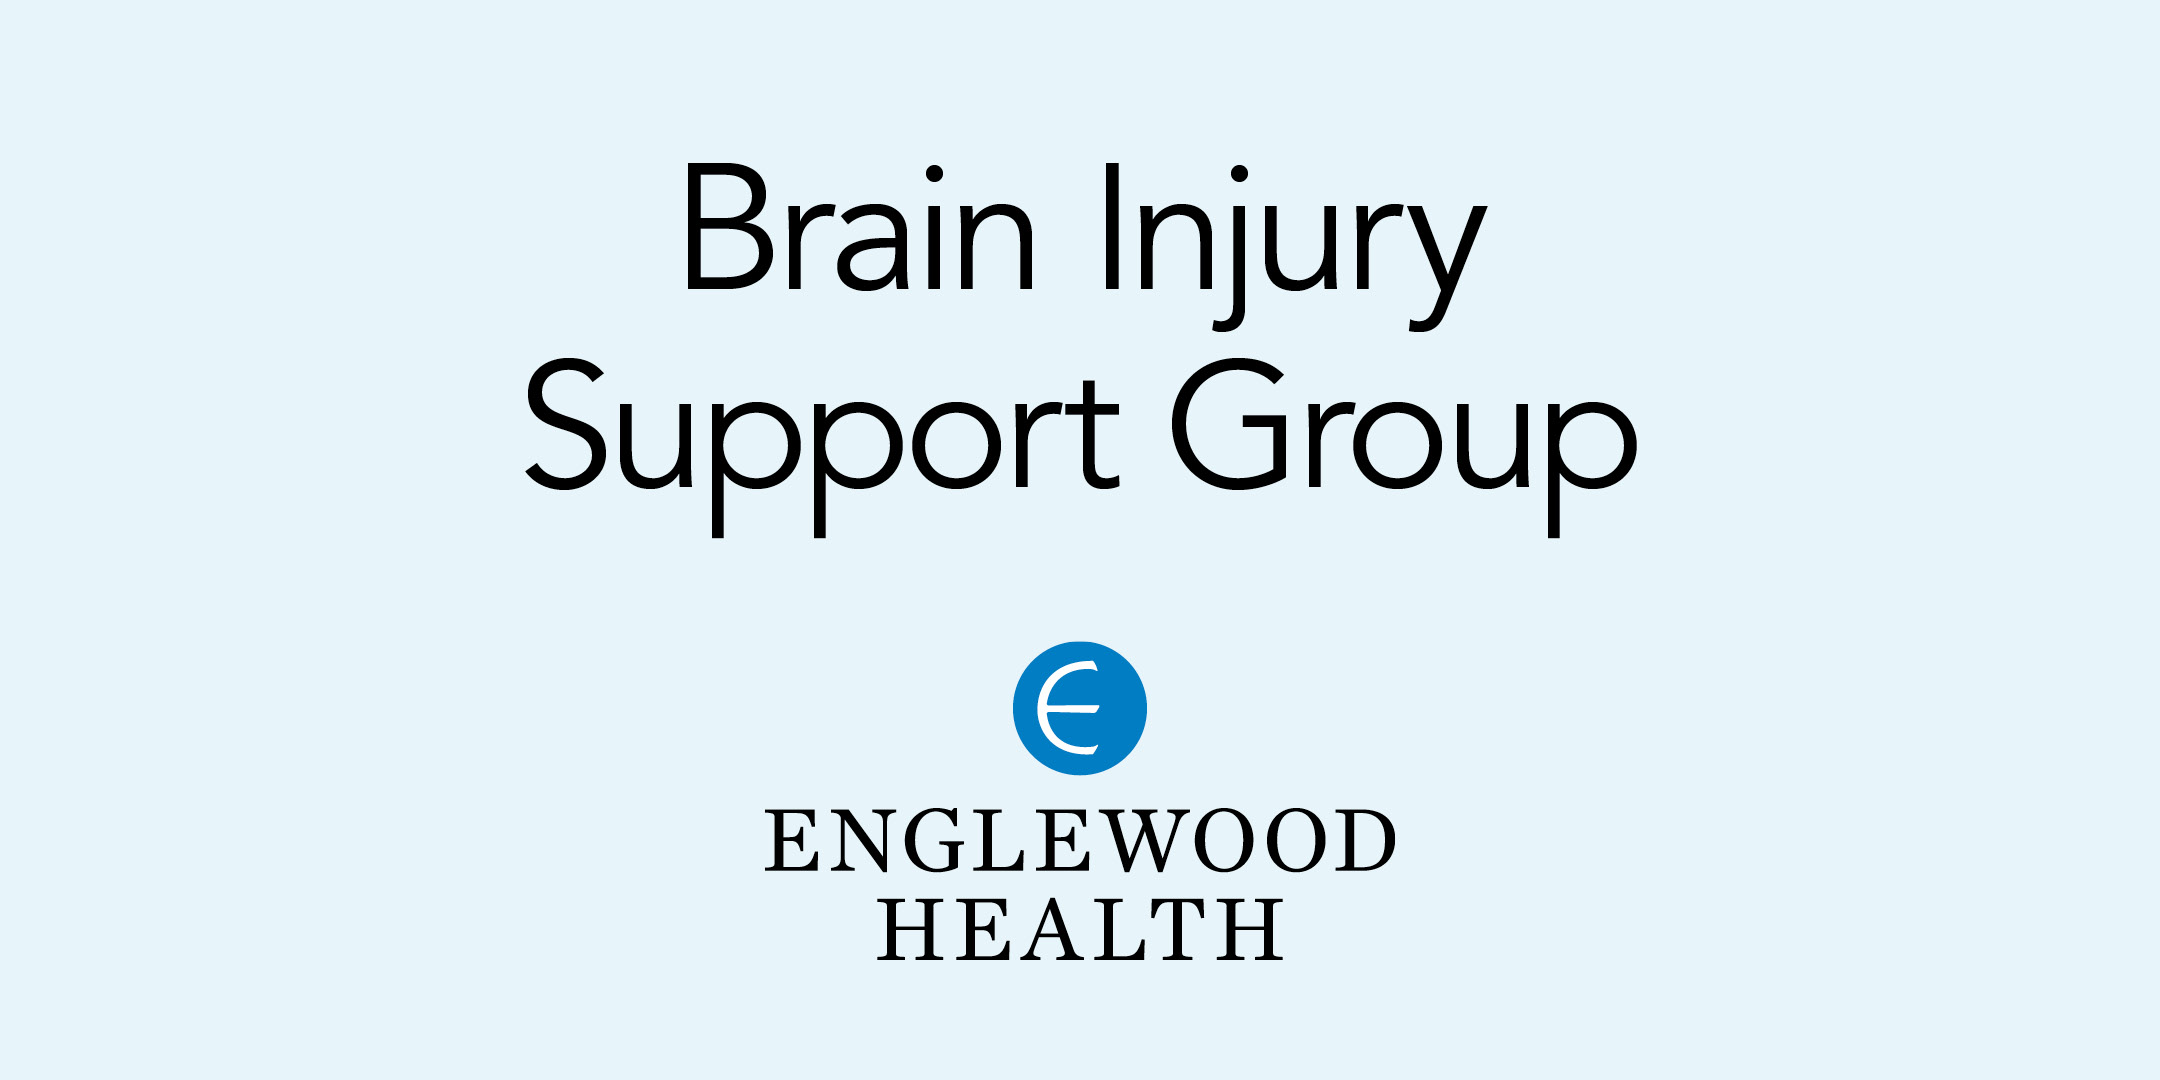 More info: Brain Injury Support (Bergen County)